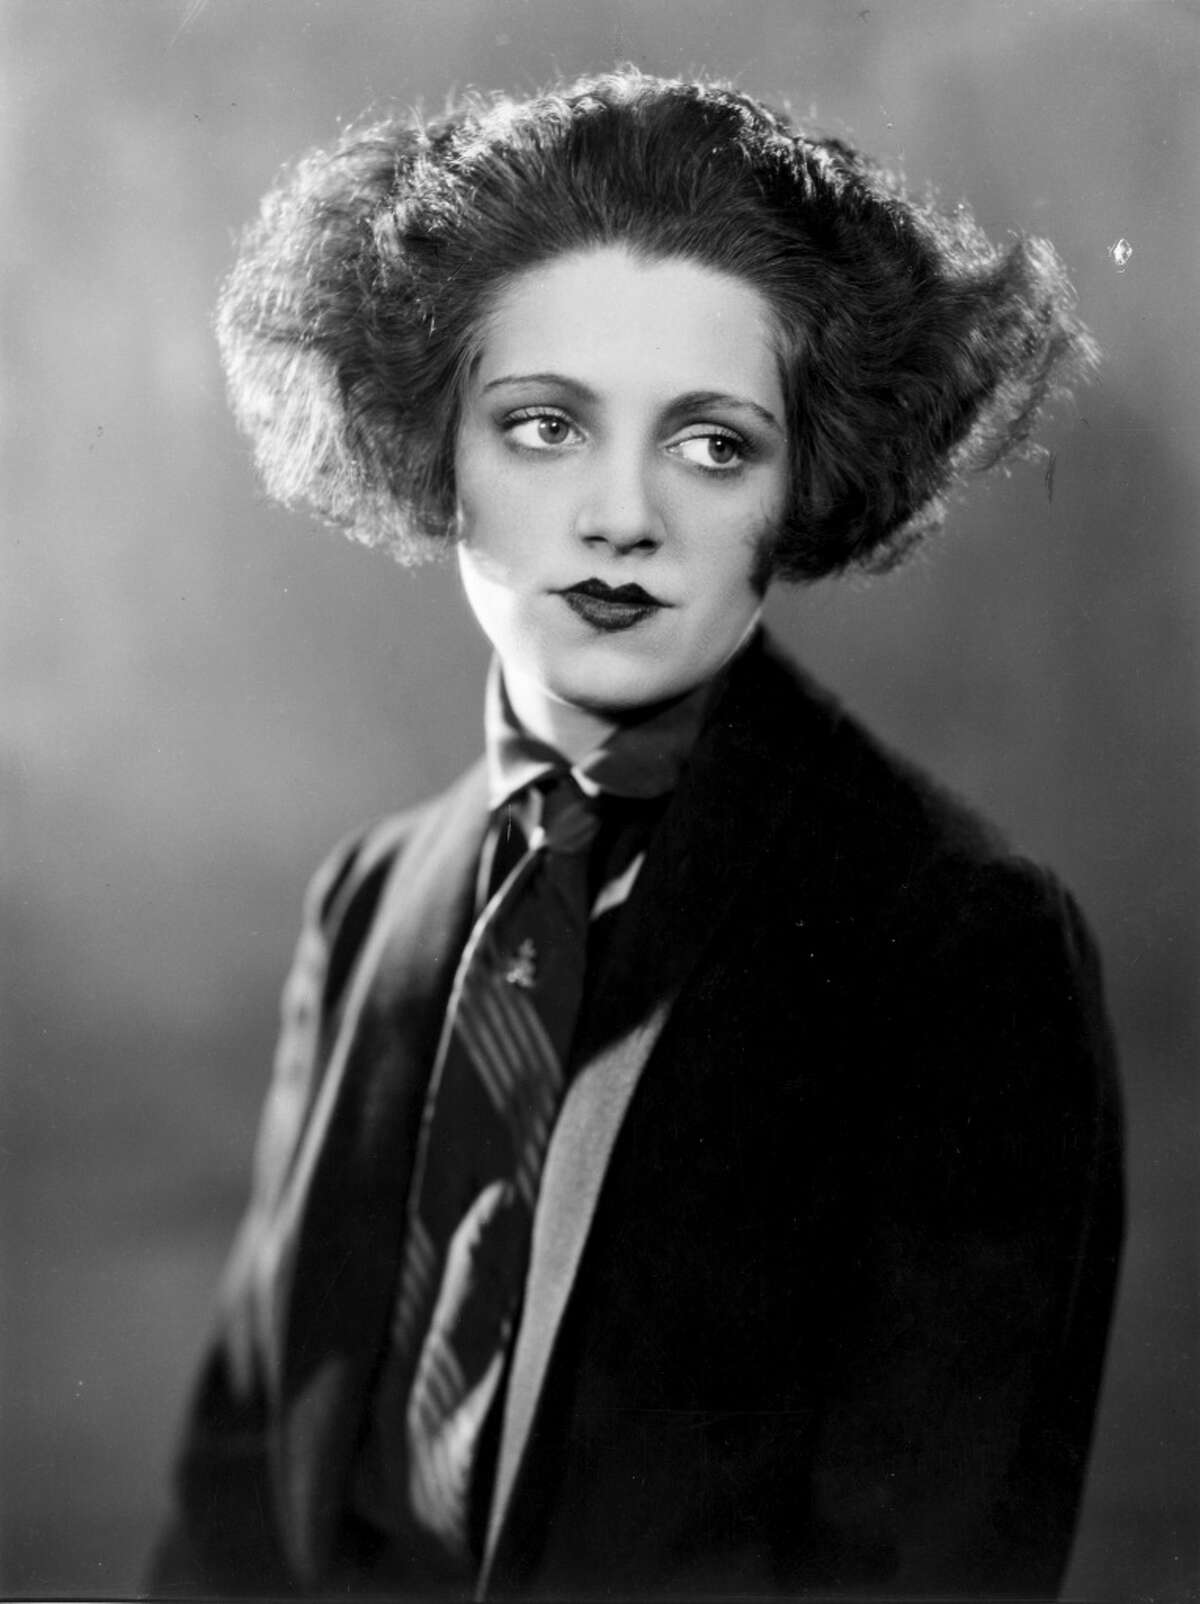 1926: Actress Hermione Baddeley (1906 - 1986), appearing in 'Queen High' at the Queen's Theatre.